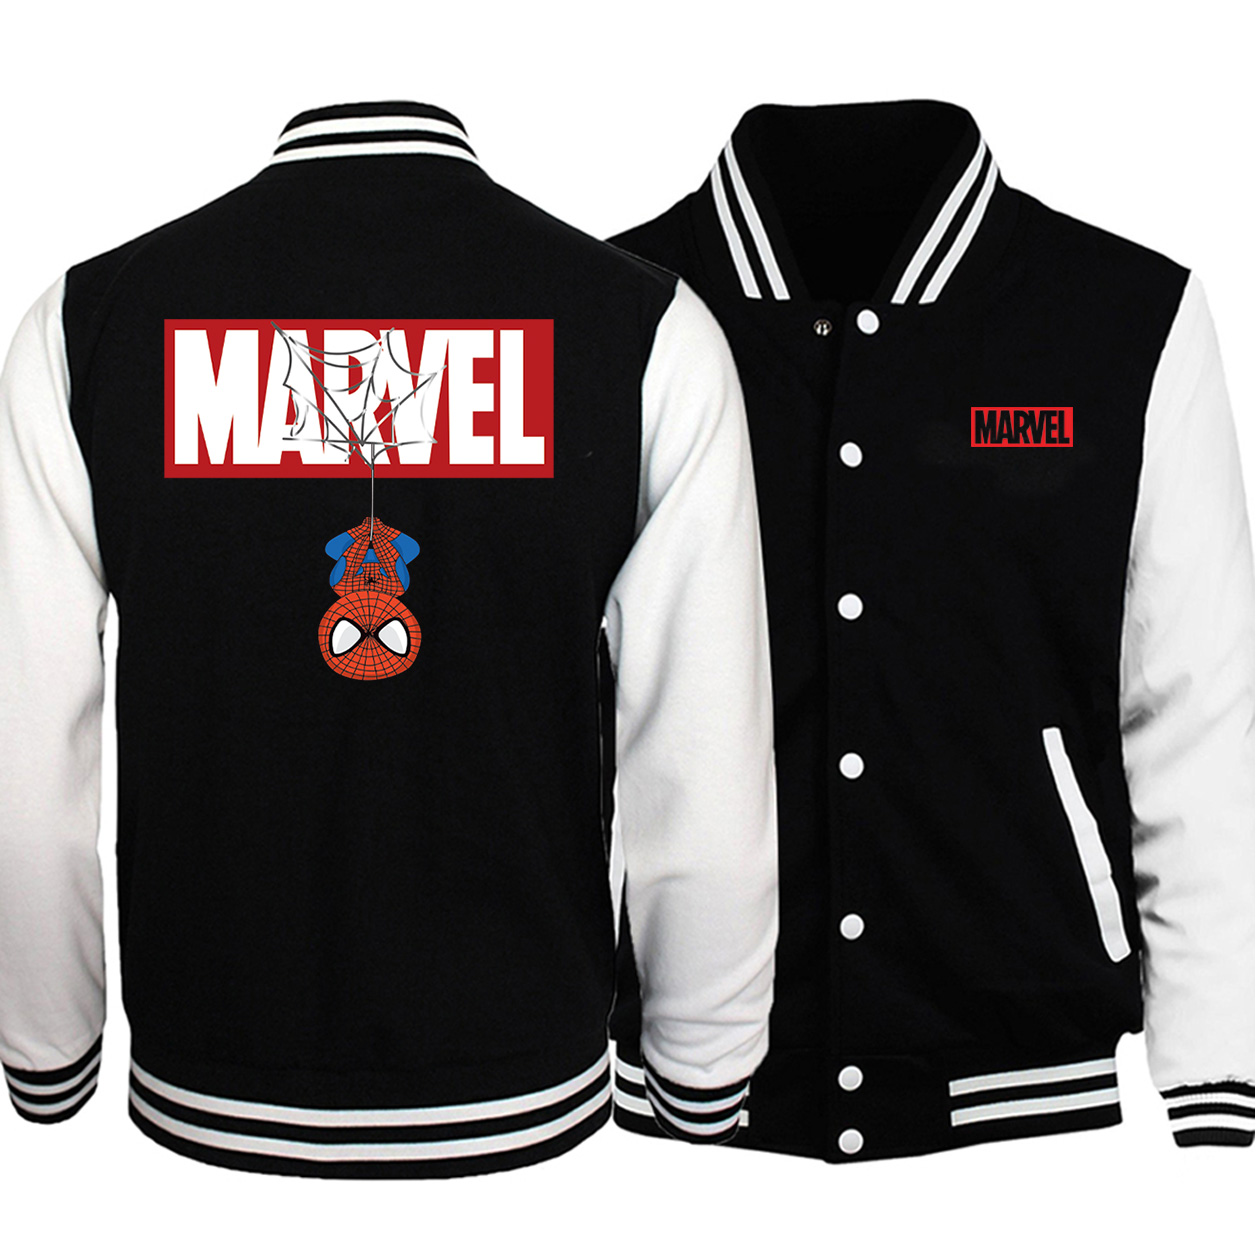 MARVEL Spiderman Print Mens Baseball Jacket 2019 Autumn New Baseball Uniform Men Casual Man Sportswear The Avengers Fashion Coat